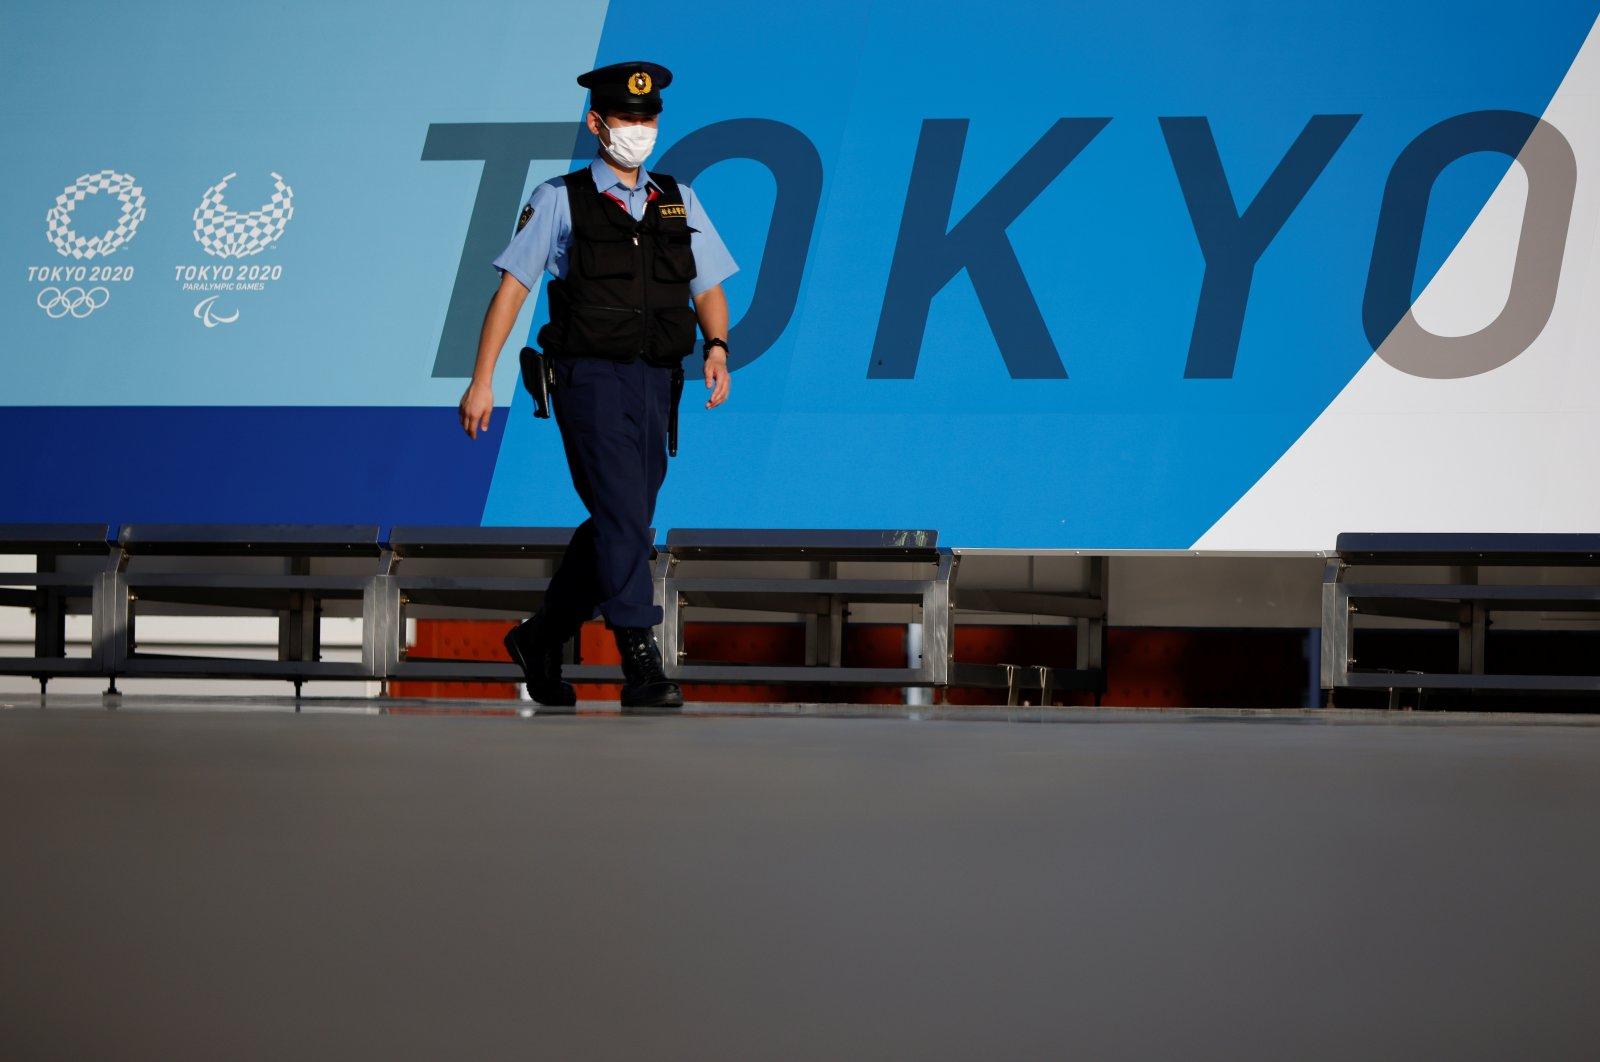 A police officer wearing a face mask walks past Tokyo 2020 Olympic Games signage at the Main Press Center during the coronavirus outbreak in Tokyo, Japan, July 16, 2021. (Reuters Photo)